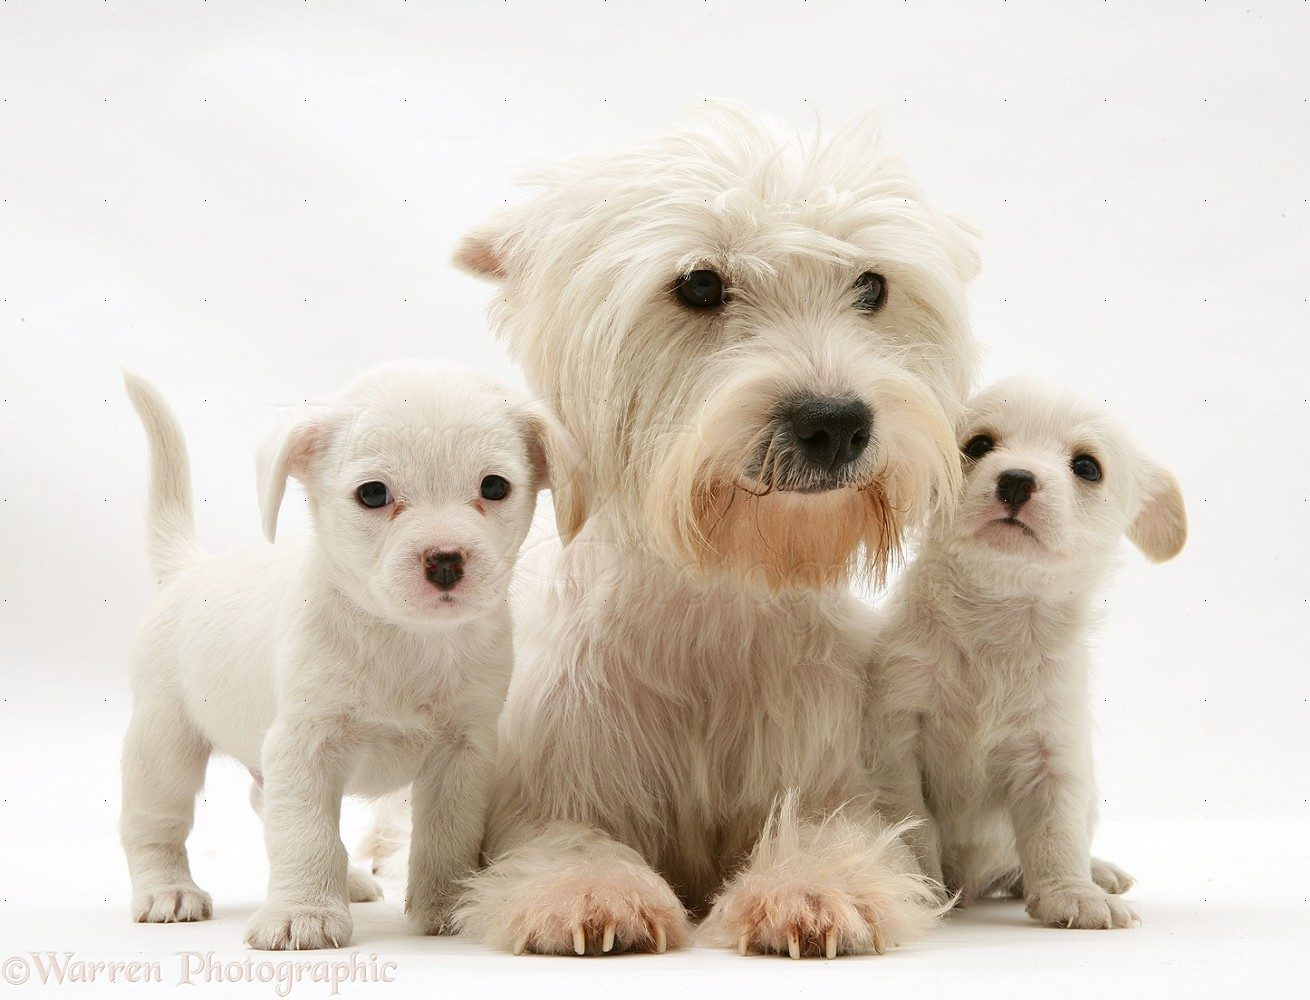 Dogs: Mother Westie with Westie x Cavalier pups photo - WP39125